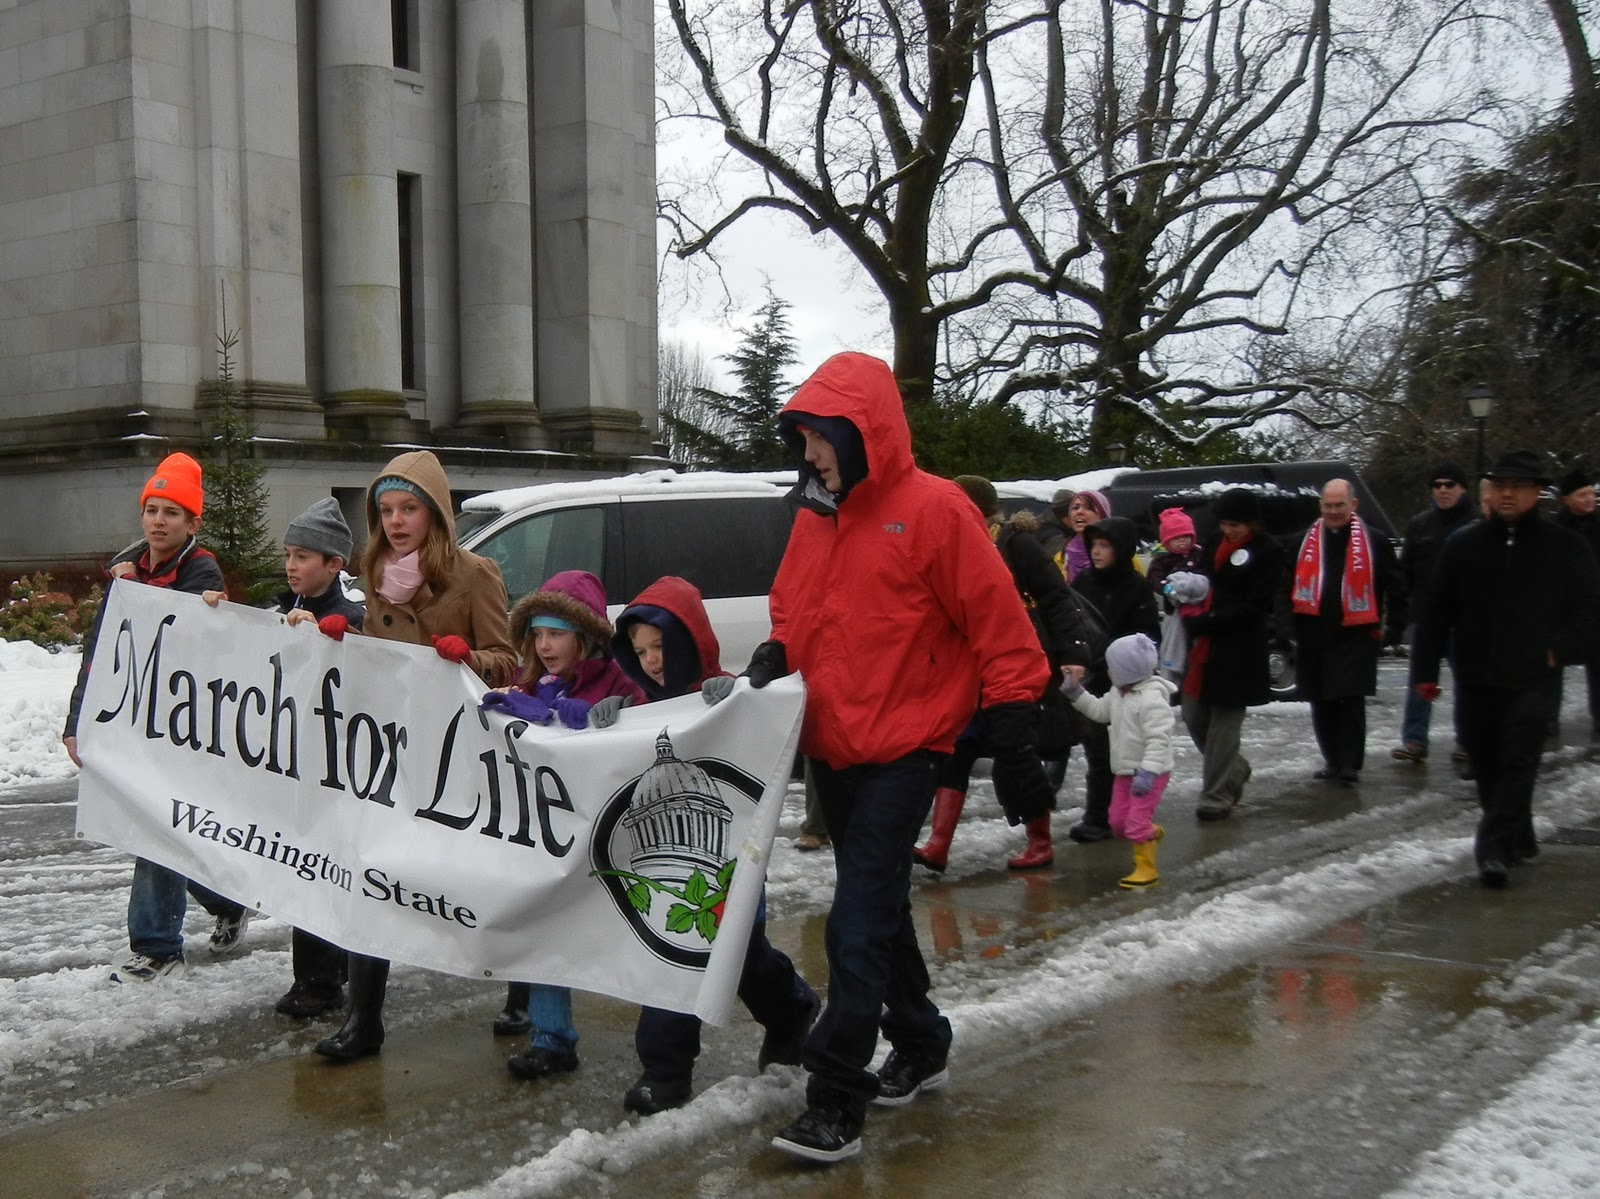 March for Life Olympia